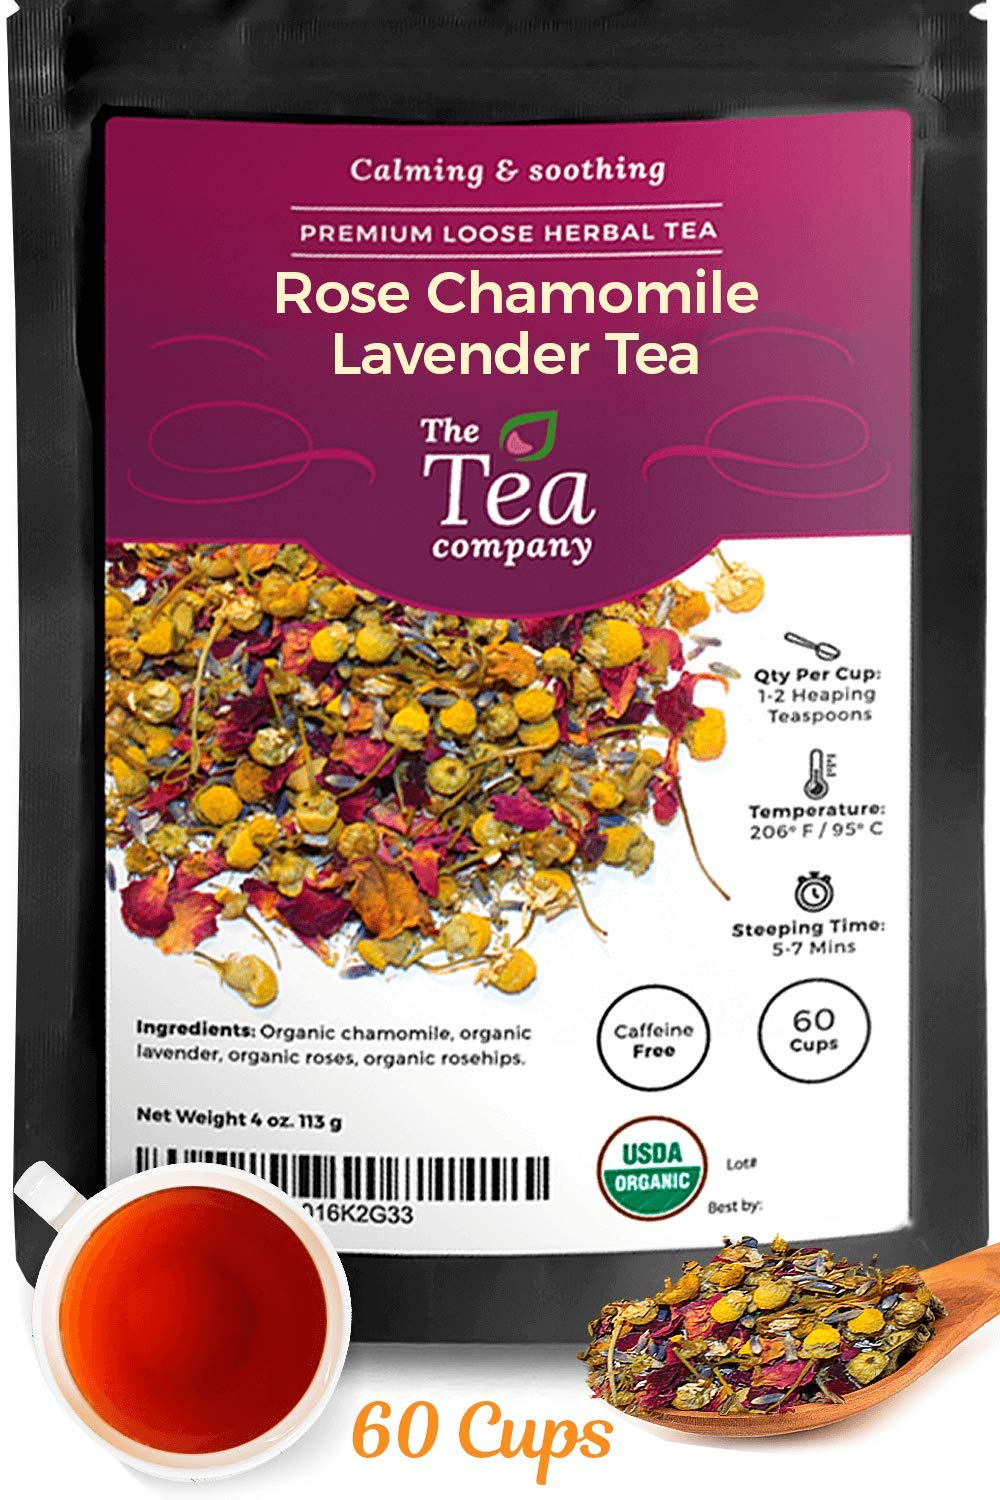 Rose Chamomile Lavender Tea 60 Cups of Stress Relief - Sleep at Bedtime Calming and Relaxing Caffeine Free Loose Leaf Organic Herbal Tea by The Tea Company 4oz